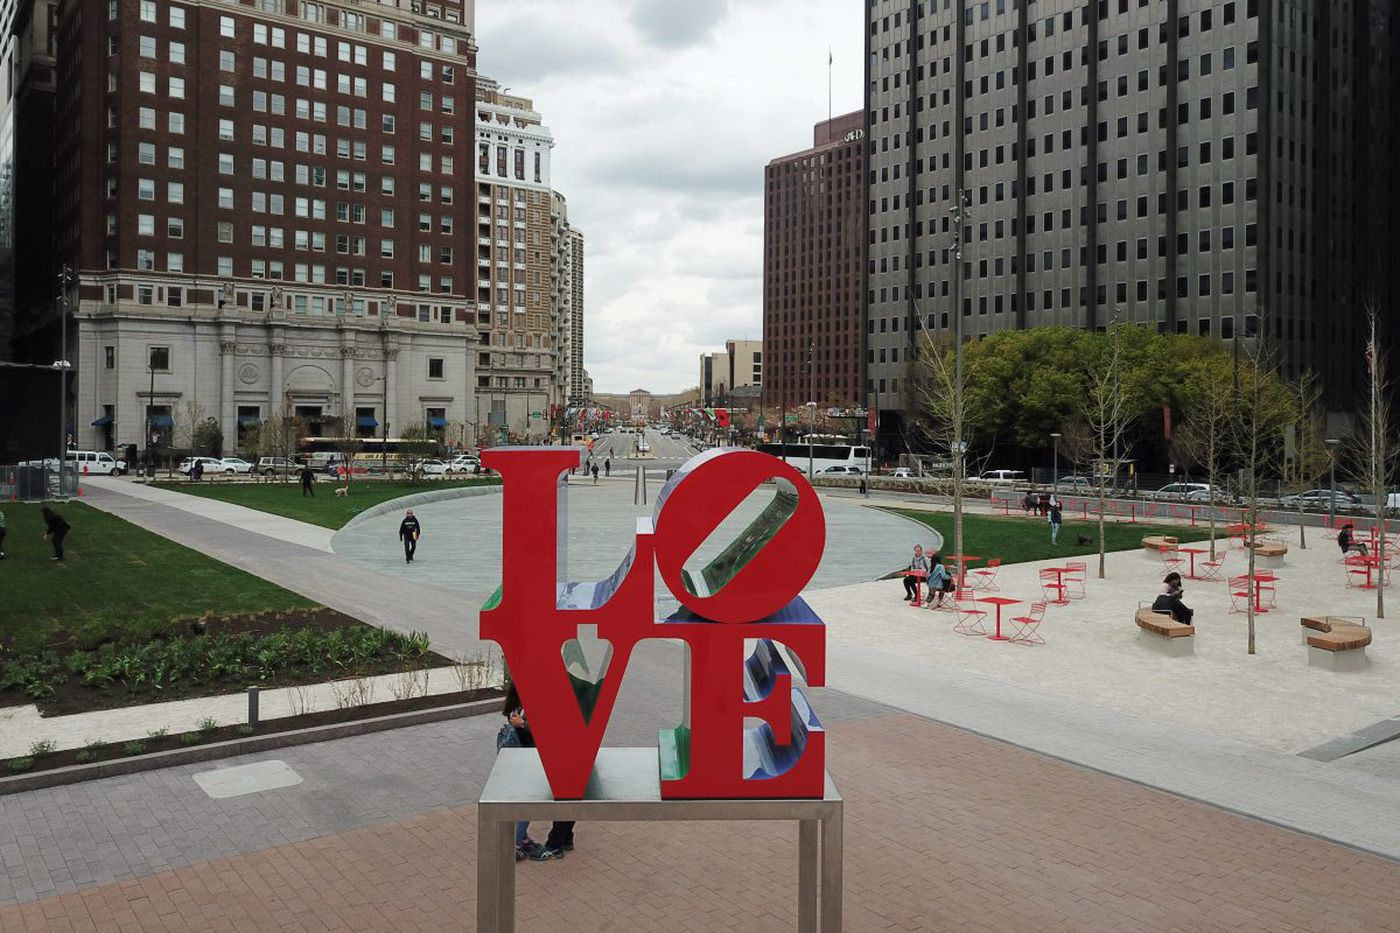 5 other places you'll find Robert Indiana's LOVE sculpture